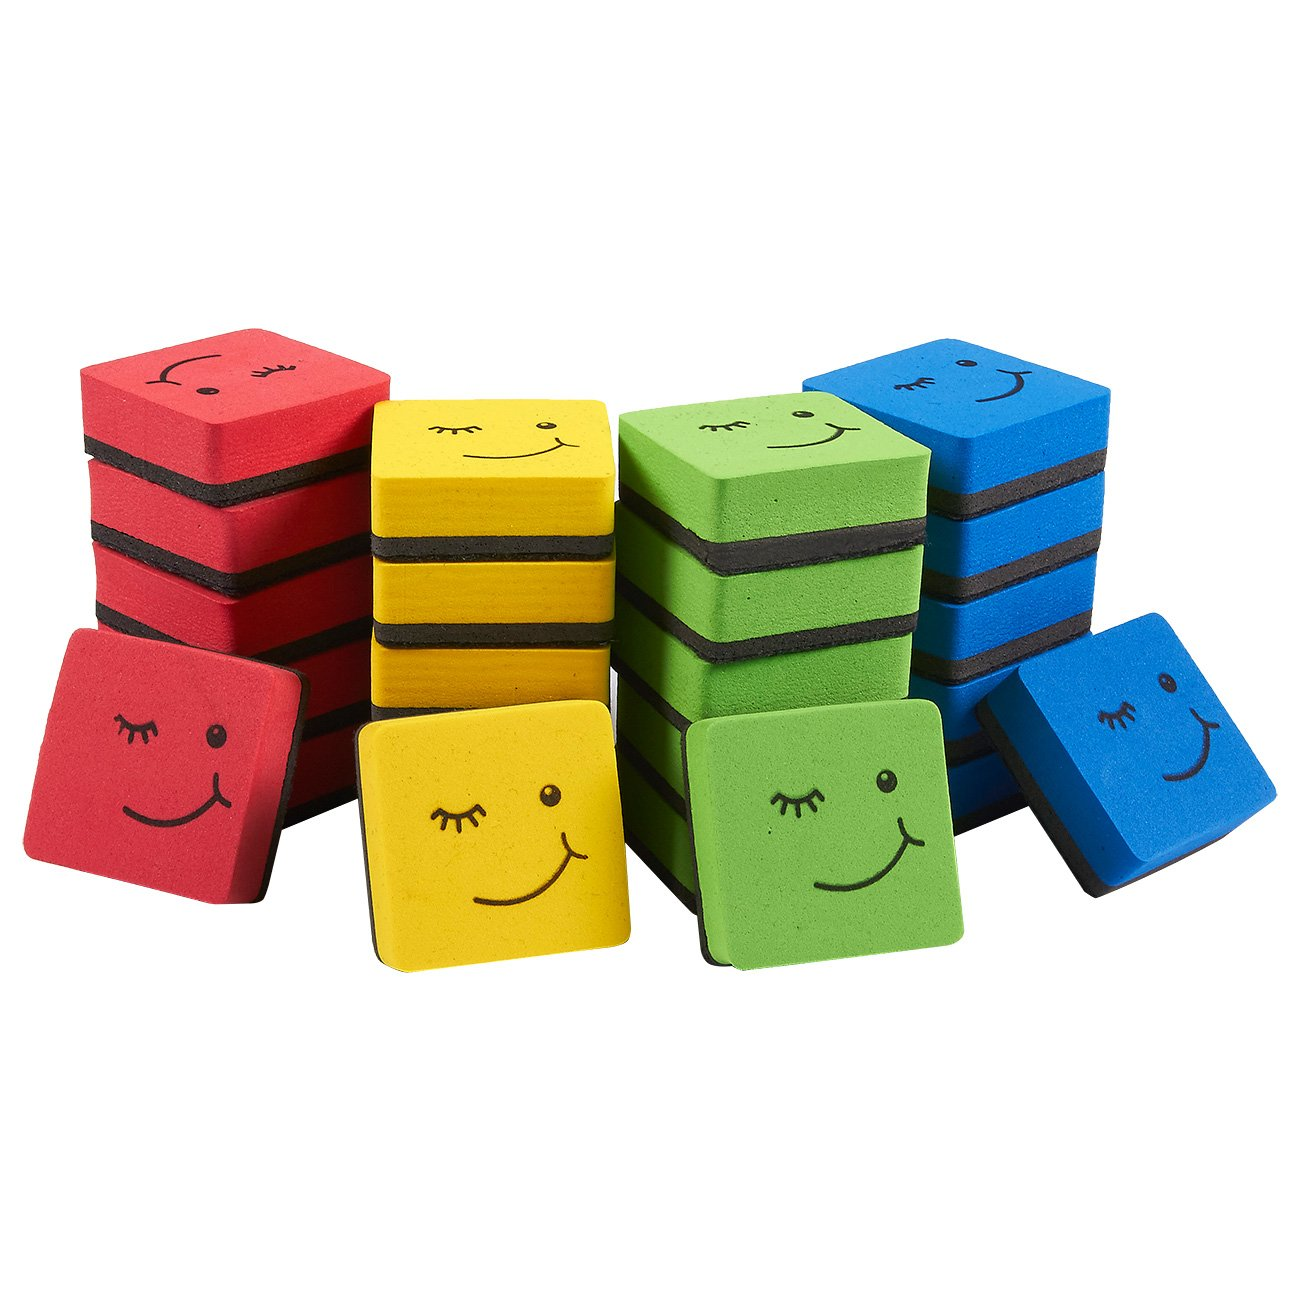 24-Pack Magnetic Whiteboard Eraser – Magnetic Dry Erasers Bulk for Dry Erase Pens and Markers, Winking Face Design, Ideal for Kids, Home, School, and Office, 4 Colors, 1.9 x 0.7 x 1.9 Inches Juvale 4336950579